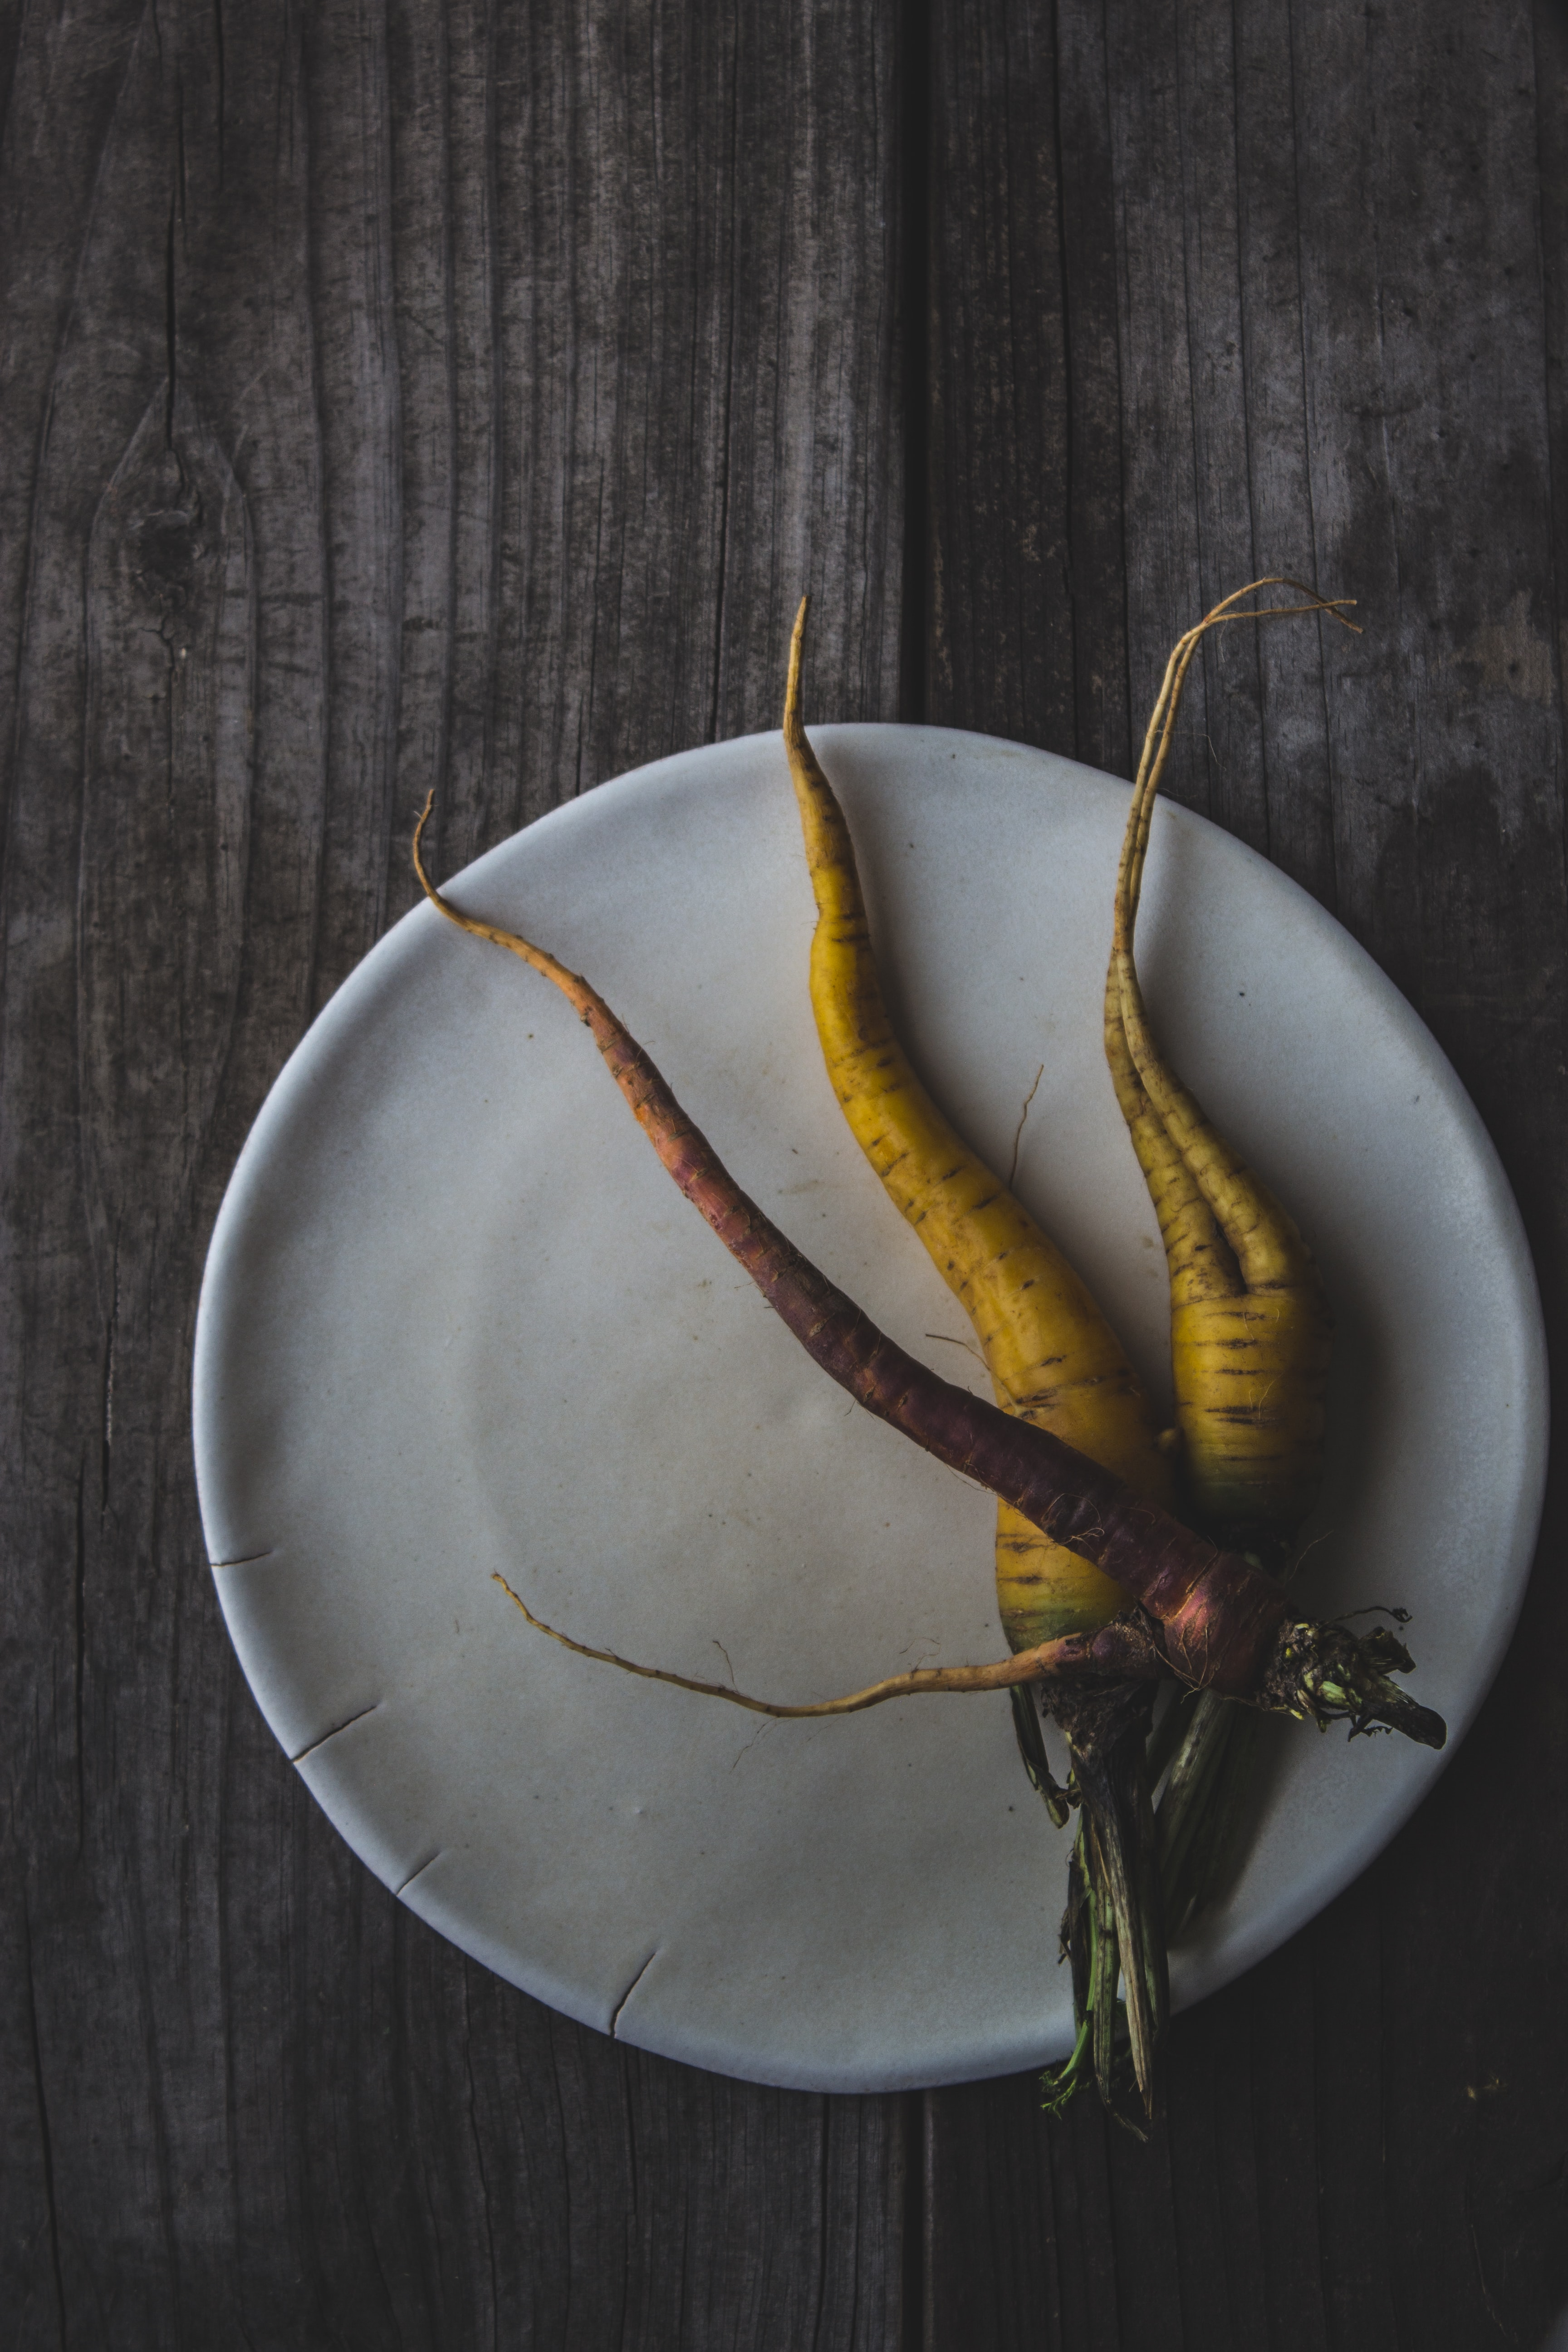 three carrots on plate